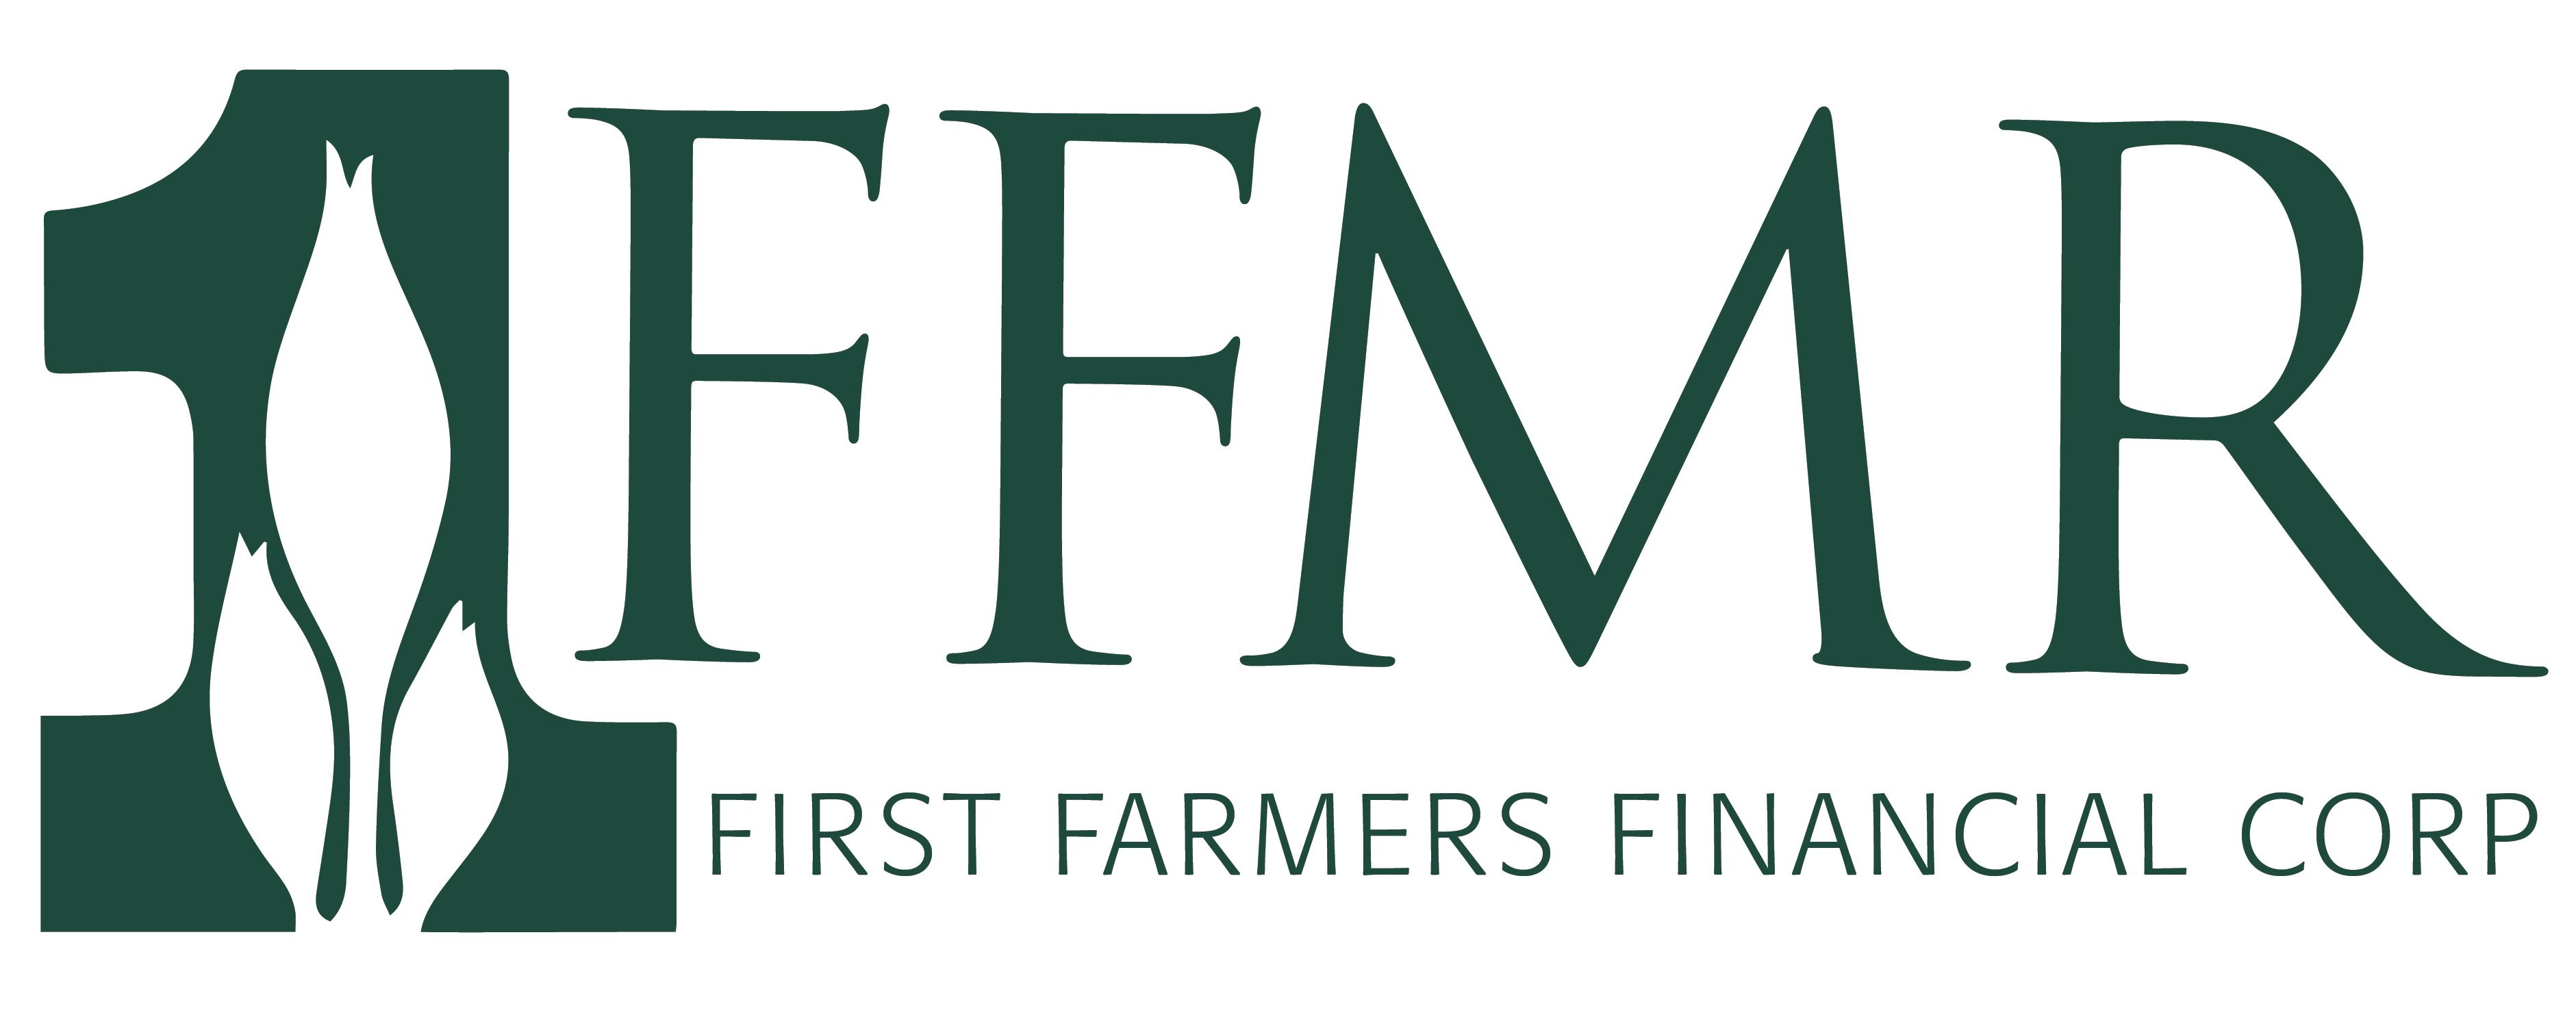 First Farmers Financial Corporation